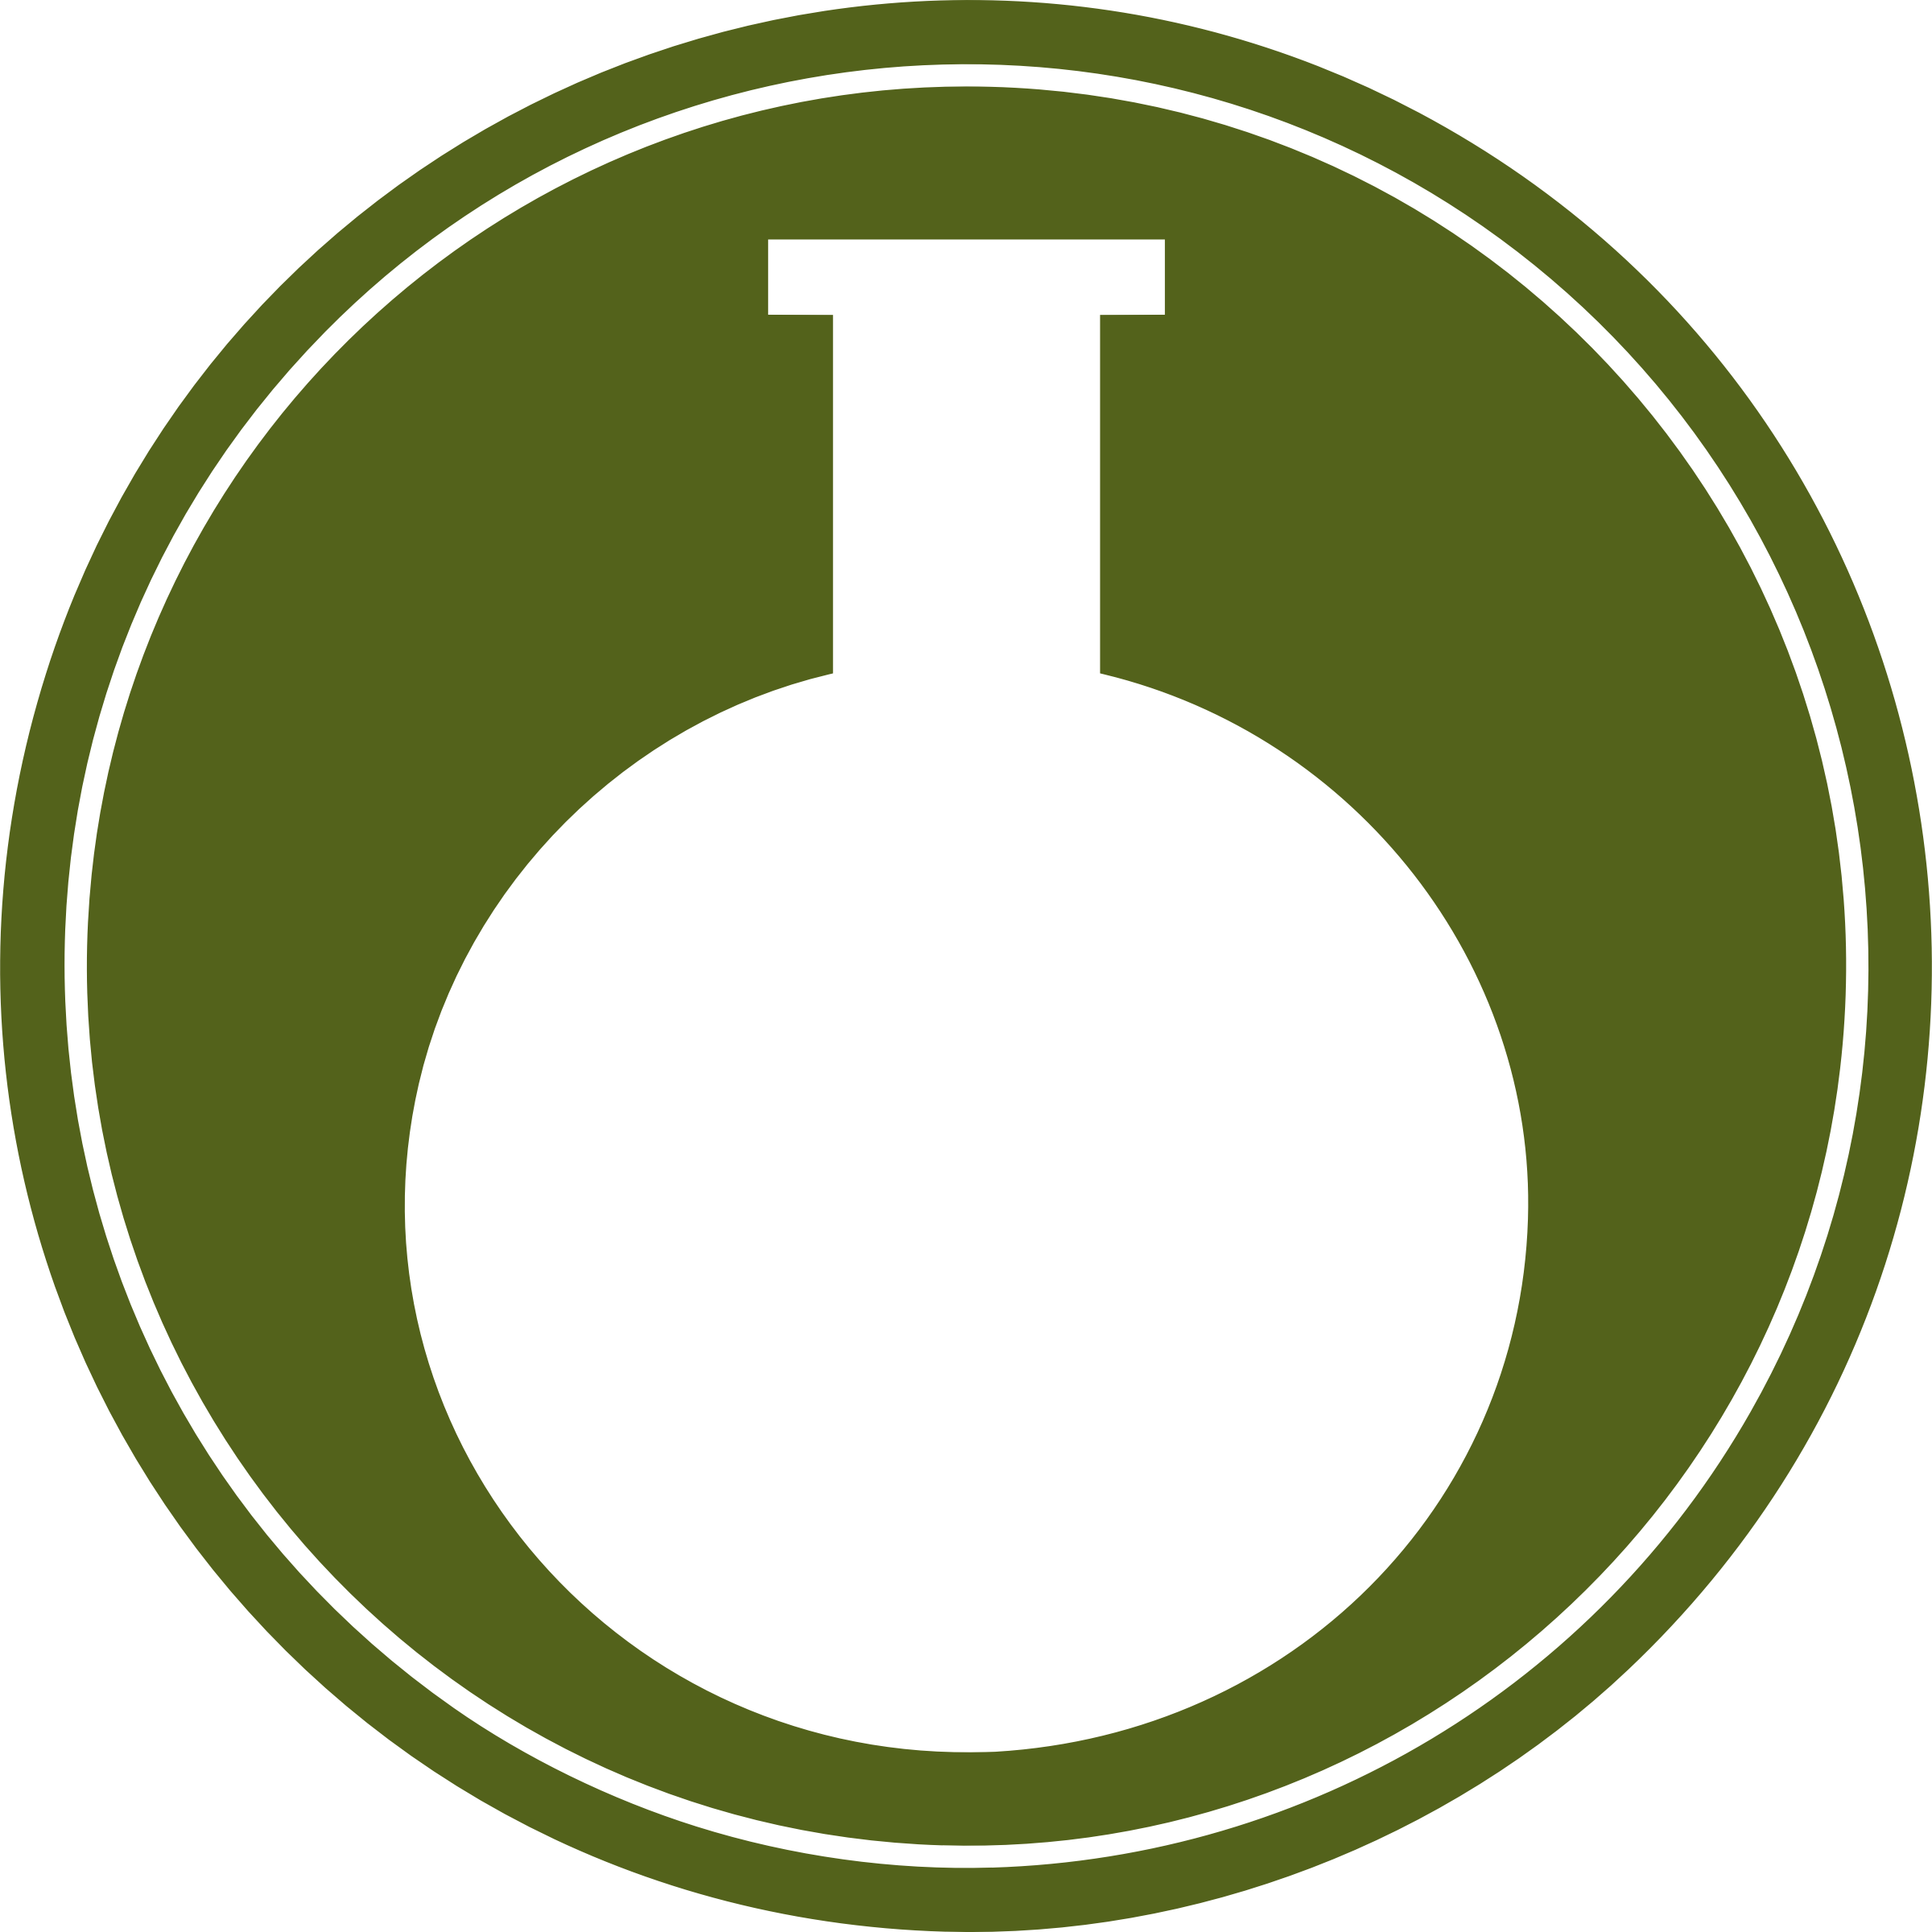 Round bottomed flask vectorized by Firkin